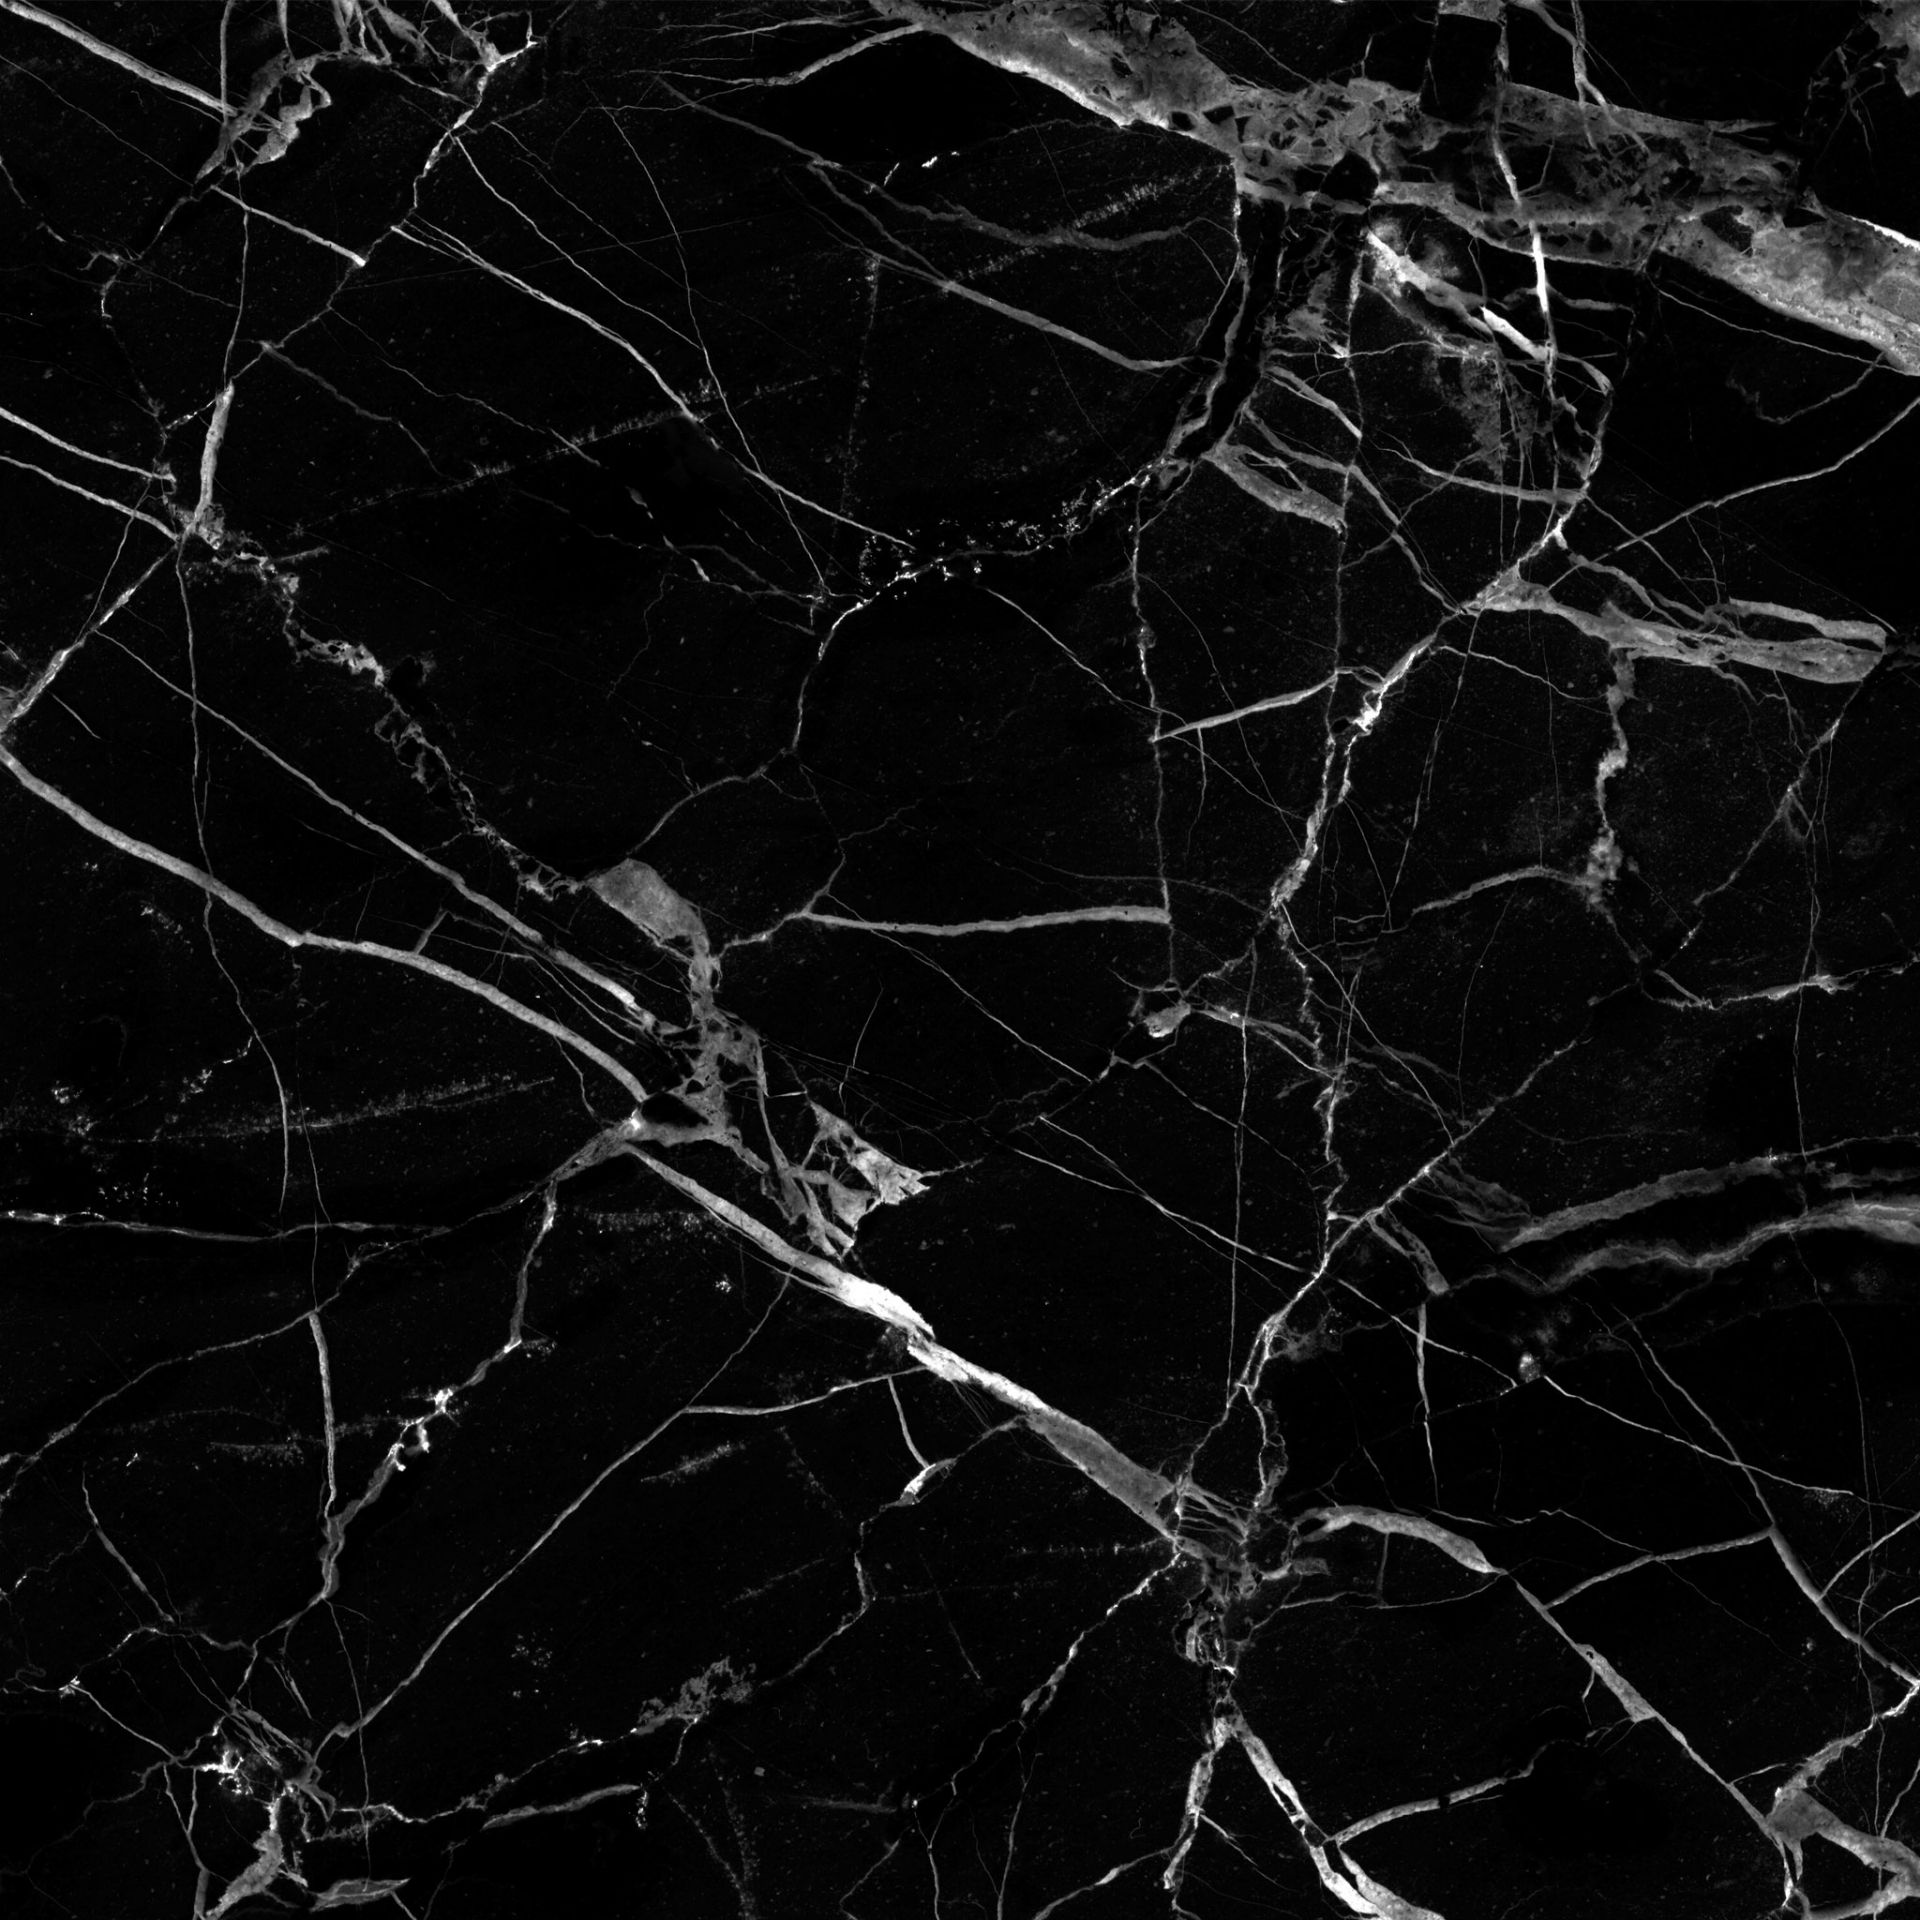 Black Marble Wallpaper Ipad Iphone Wallpapers Hd